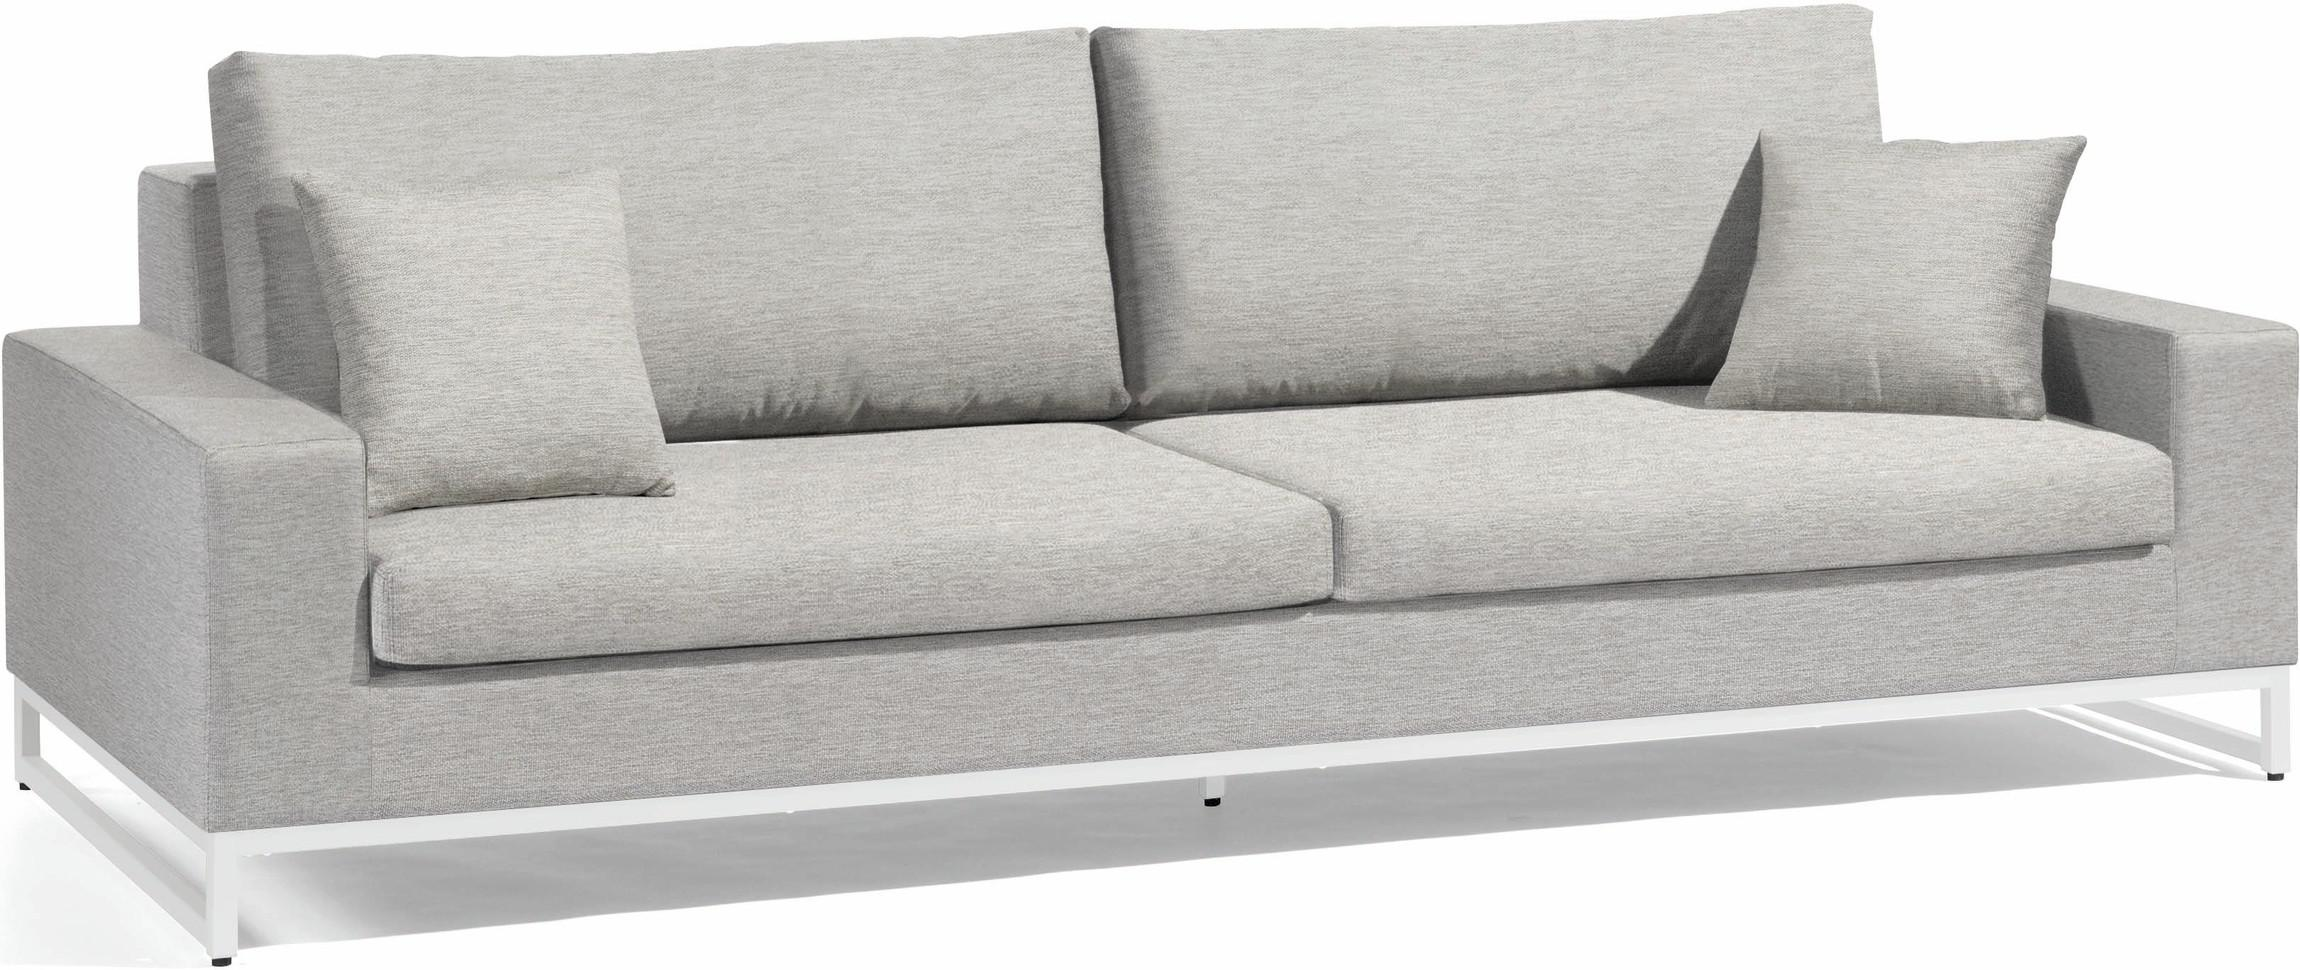 Zendo Sofa fixed - Lotus Smokey 234